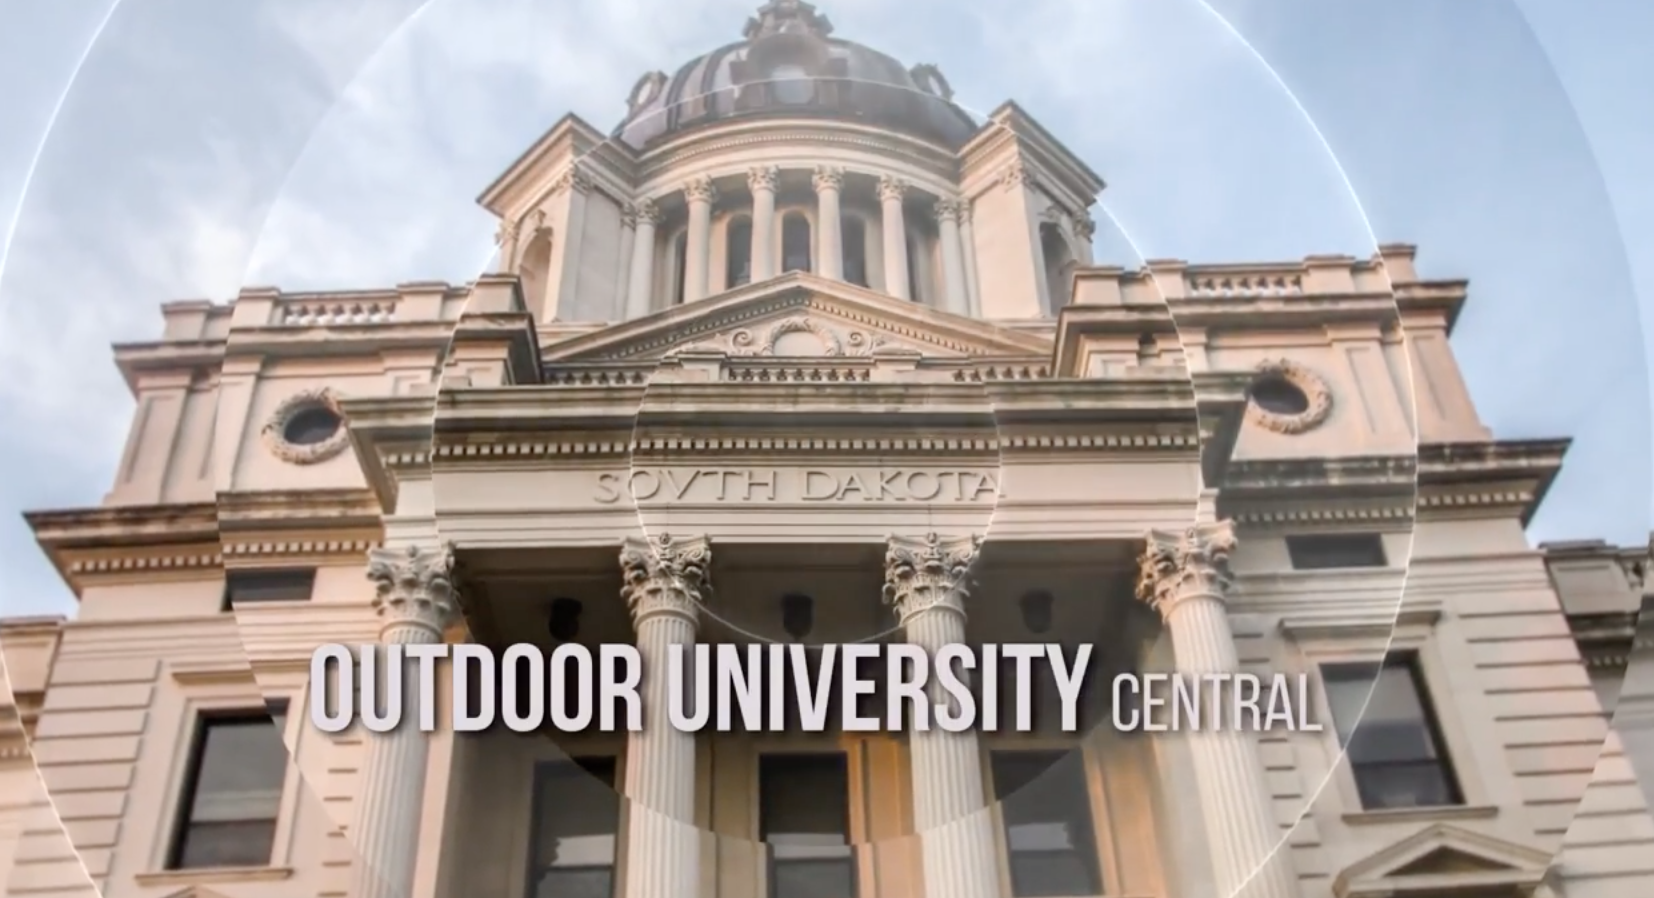 Outdoor University Central